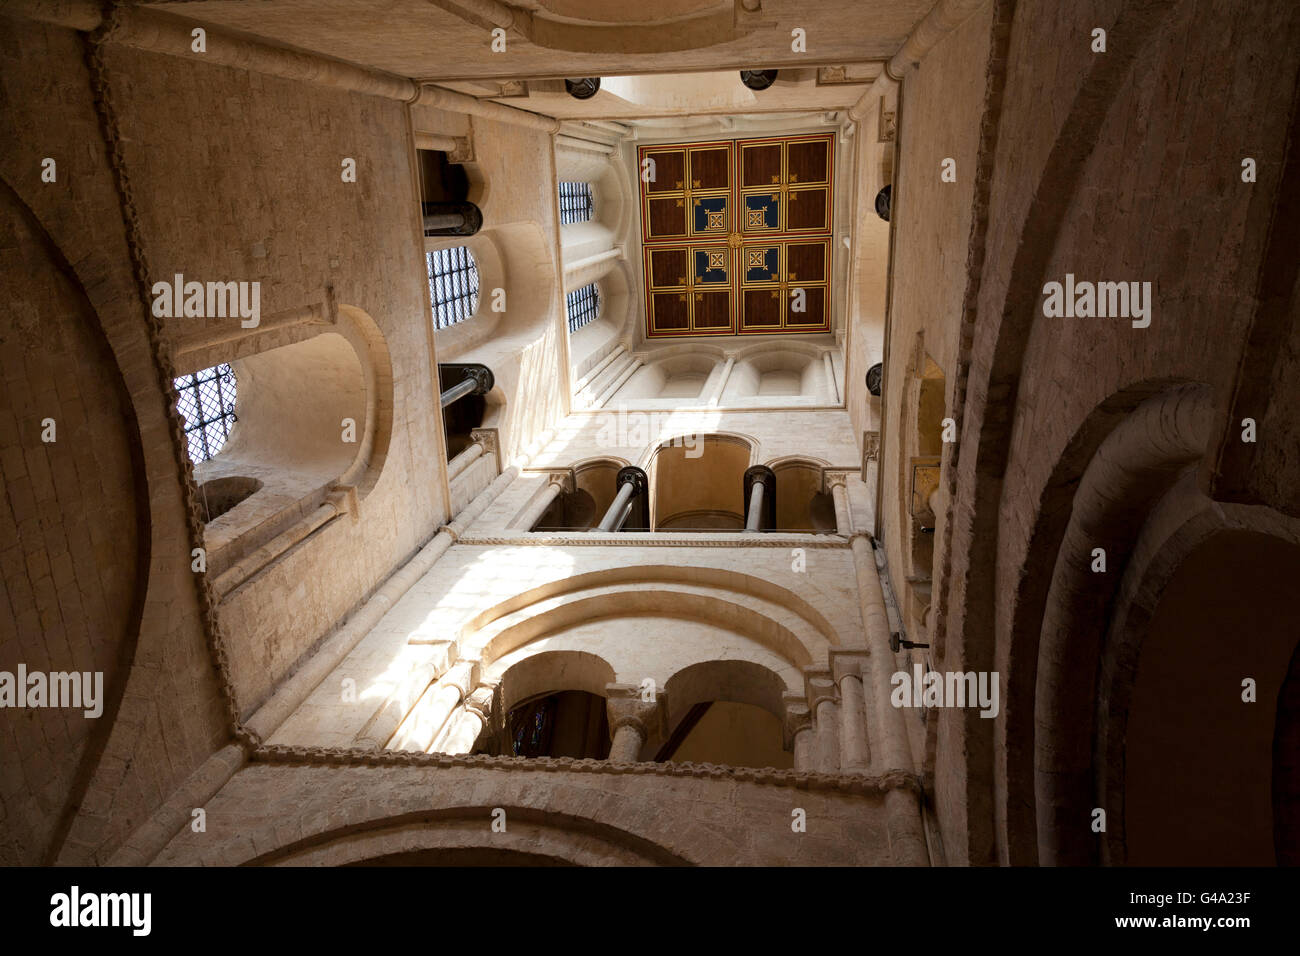 Looking up above The Baptistry in Chichester Cathedral, Chichester, West Sussex, England, United Kingdom, Europe - Stock Image